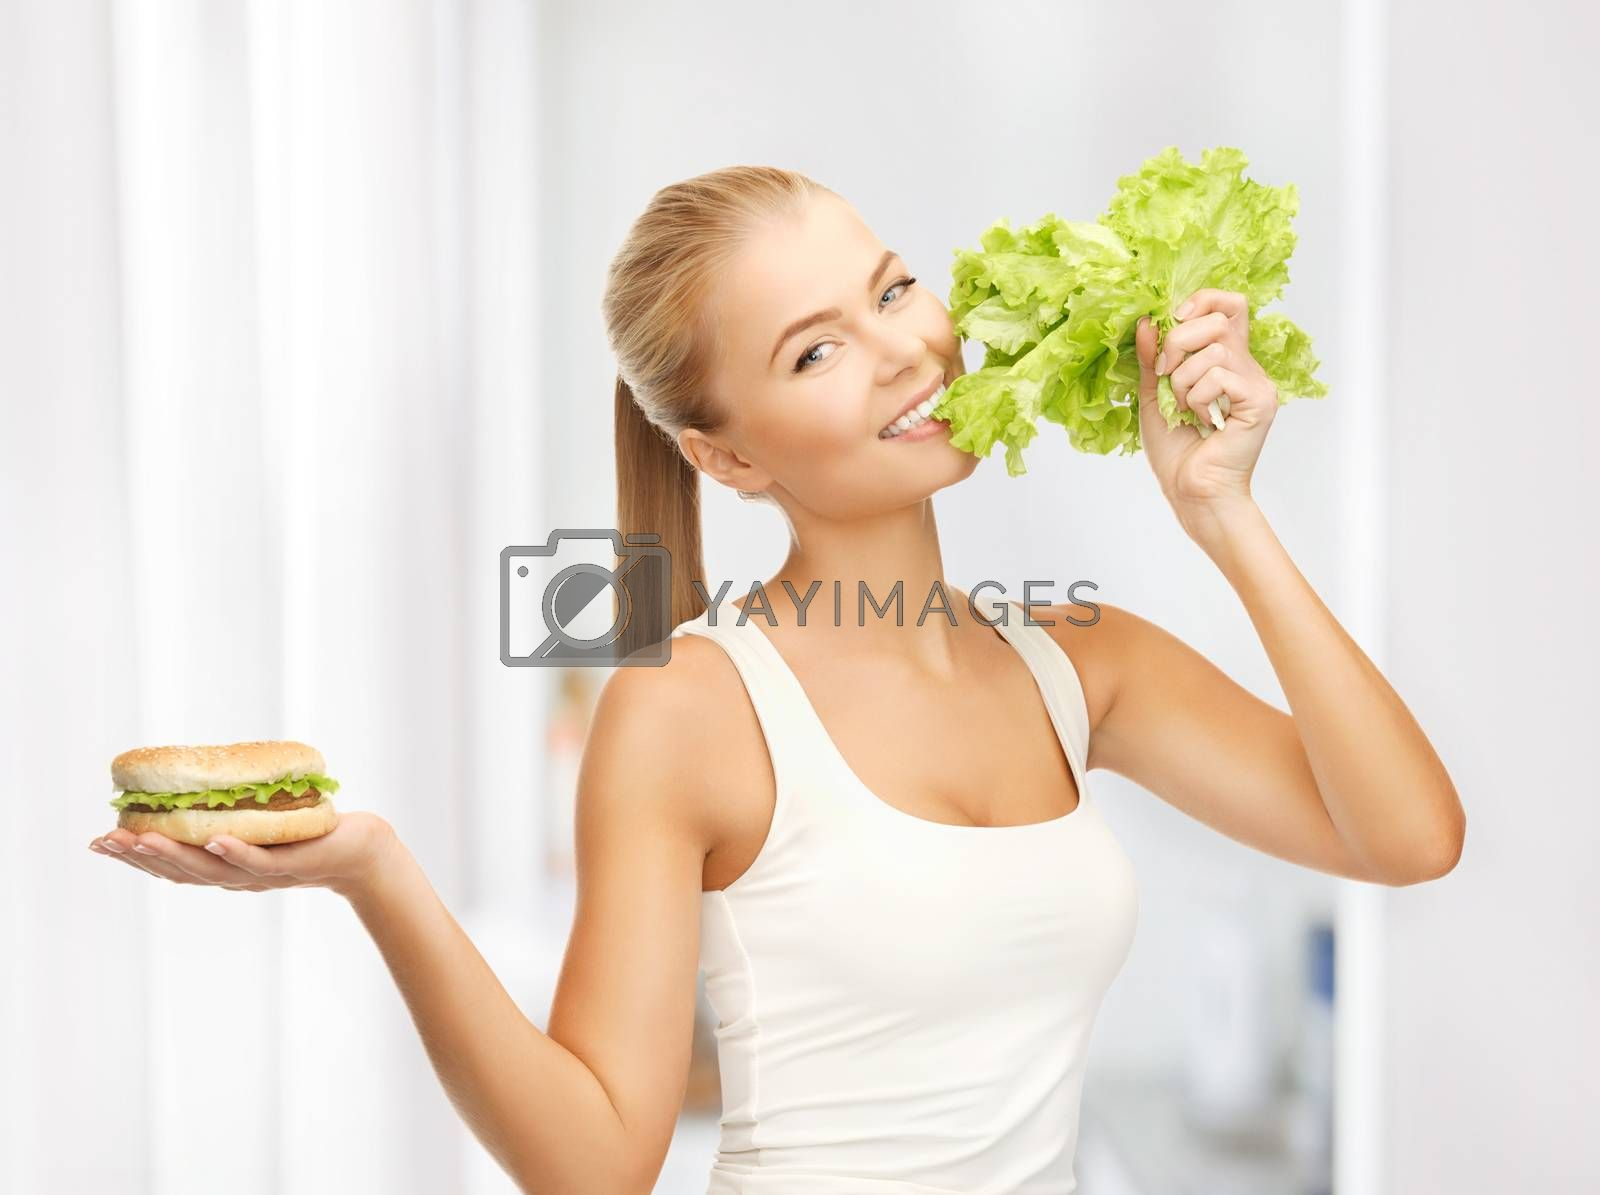 woman with green lettuce and hamburger by dolgachov